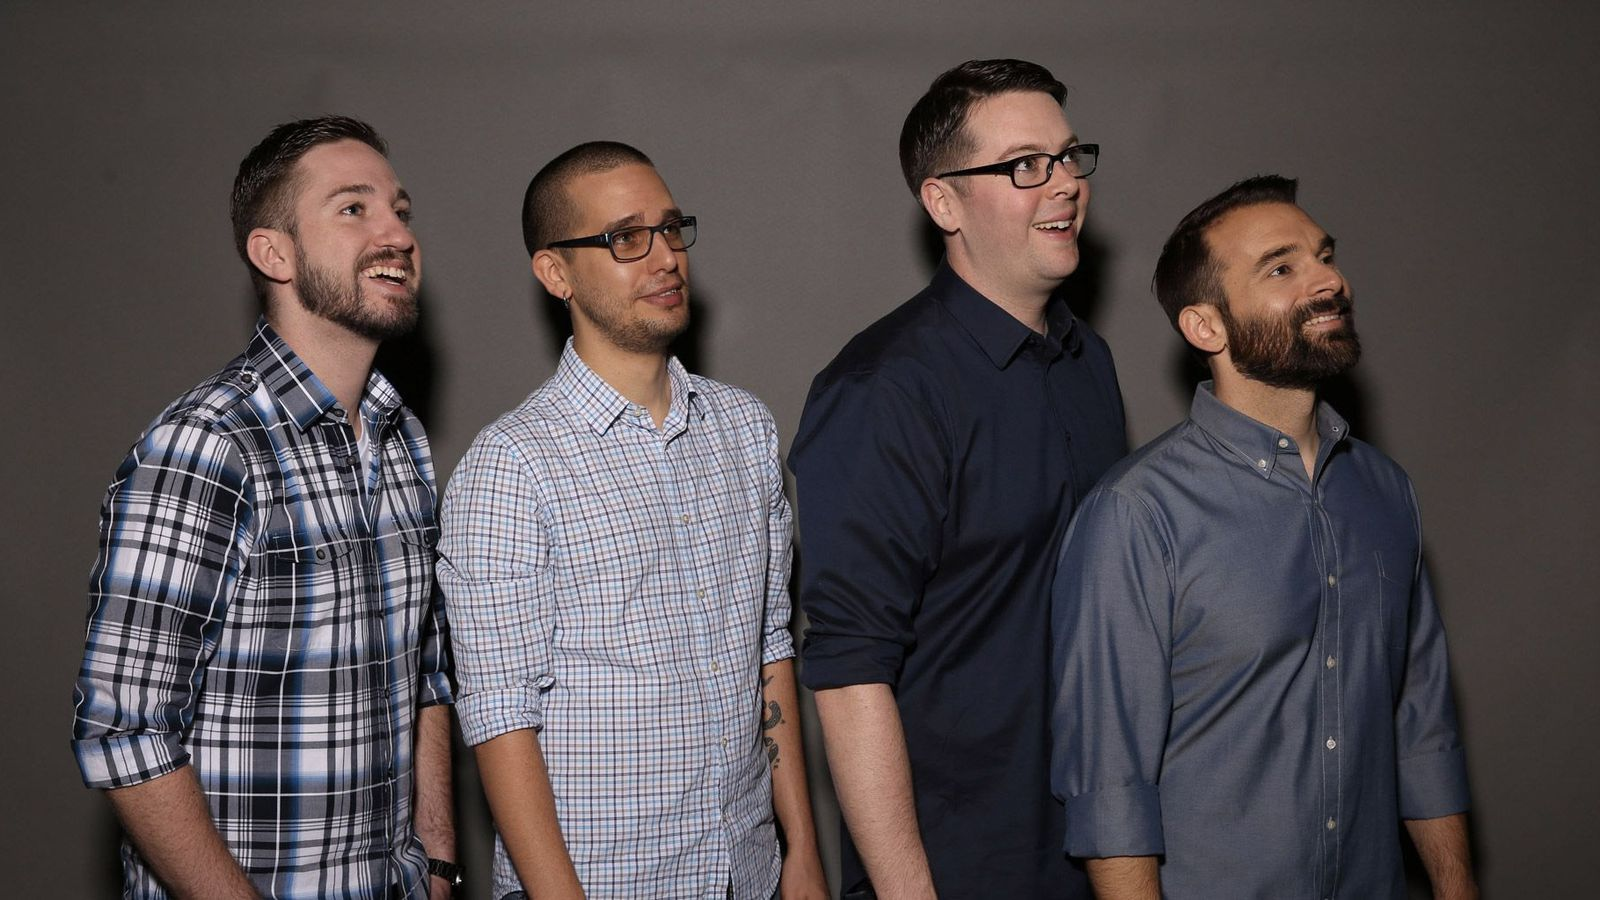 Kinda Funny co-founder Colin Moriarty quits in wake of sexist tweet (update)